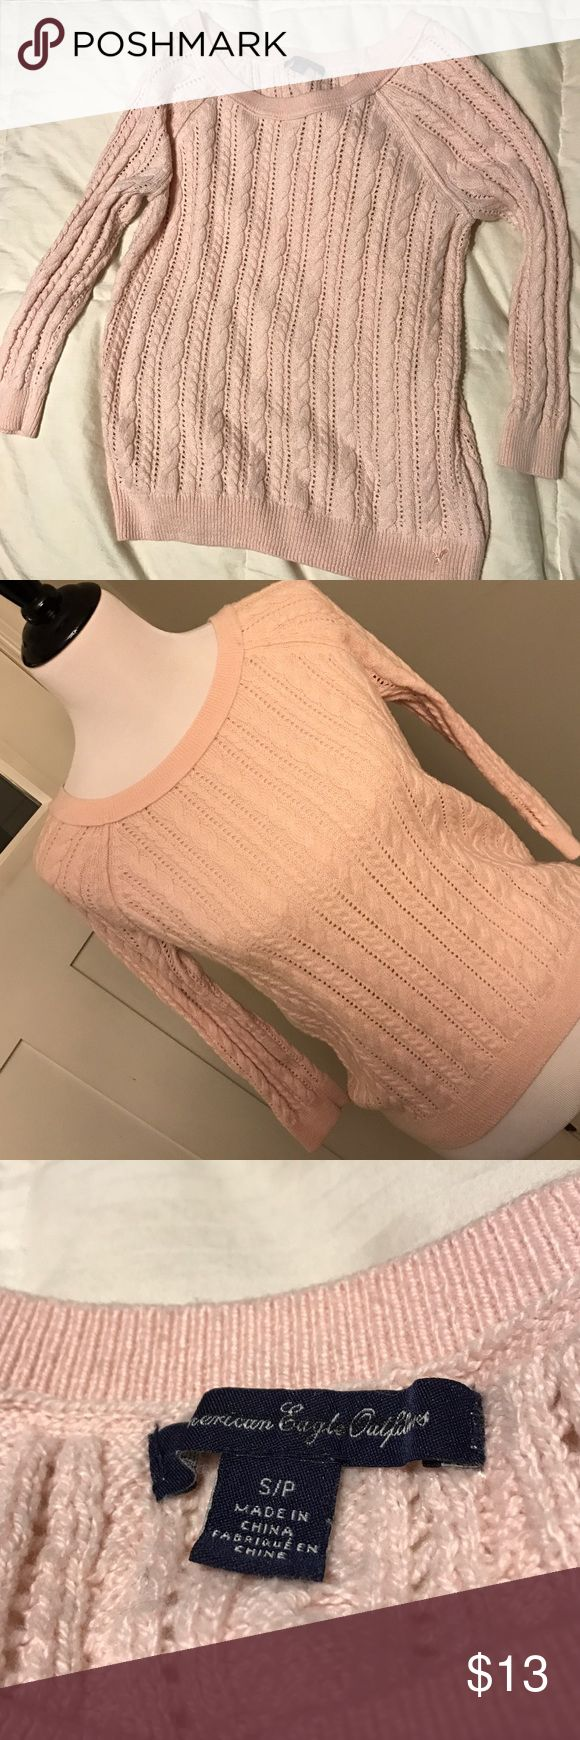 American Eagle 3/4 Sleeve Sweater Blush pink 3/4 sleeve American Eagle sweater in great condition / No Trades / Offers Welcome 🌸 American Eagle Outfitters Sweaters